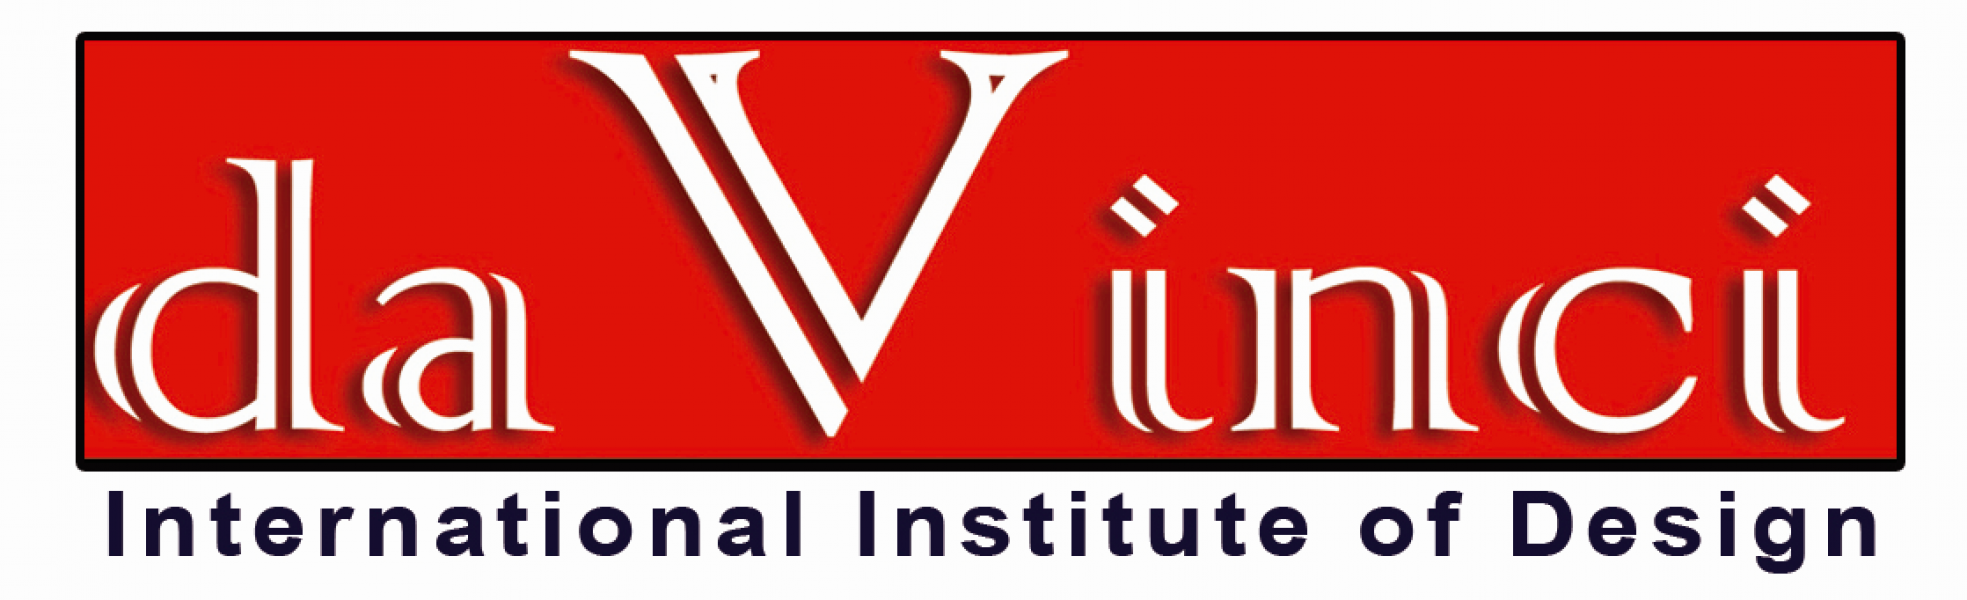 The teaching staff in da Vinci international institute of design is exemplary as we provide top-notc